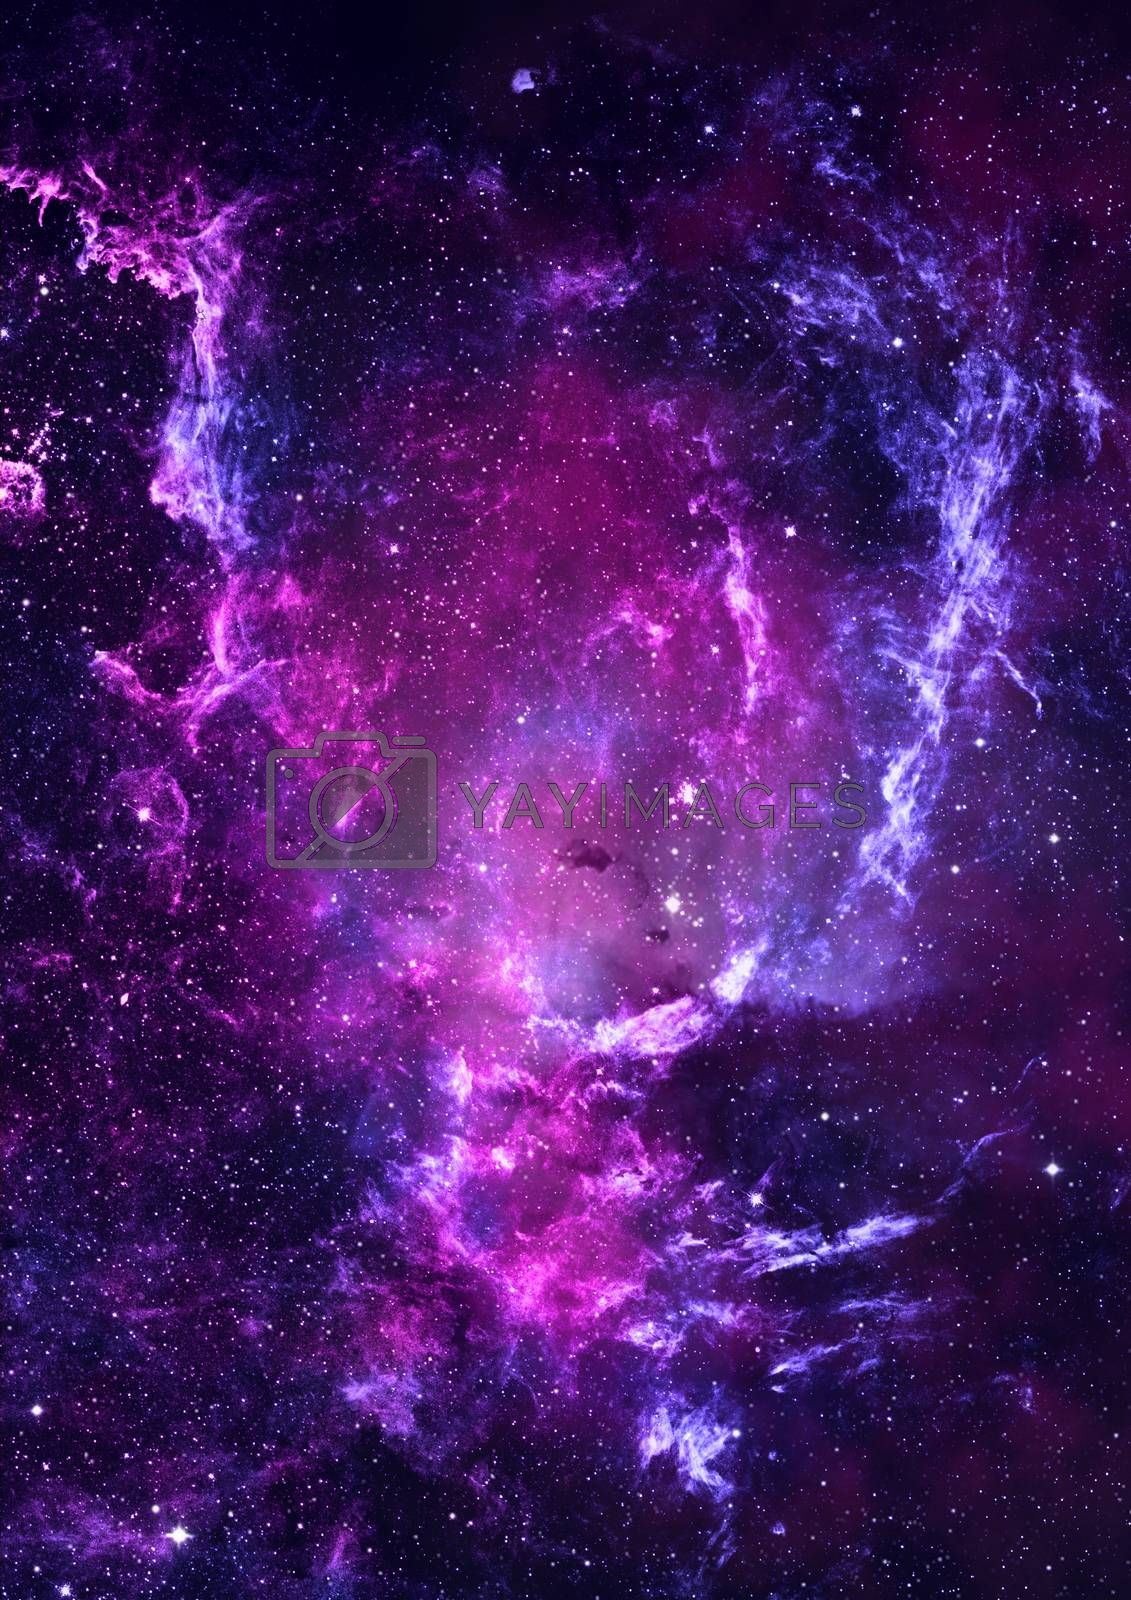 Royalty free image of Being shone nebula by richter1910